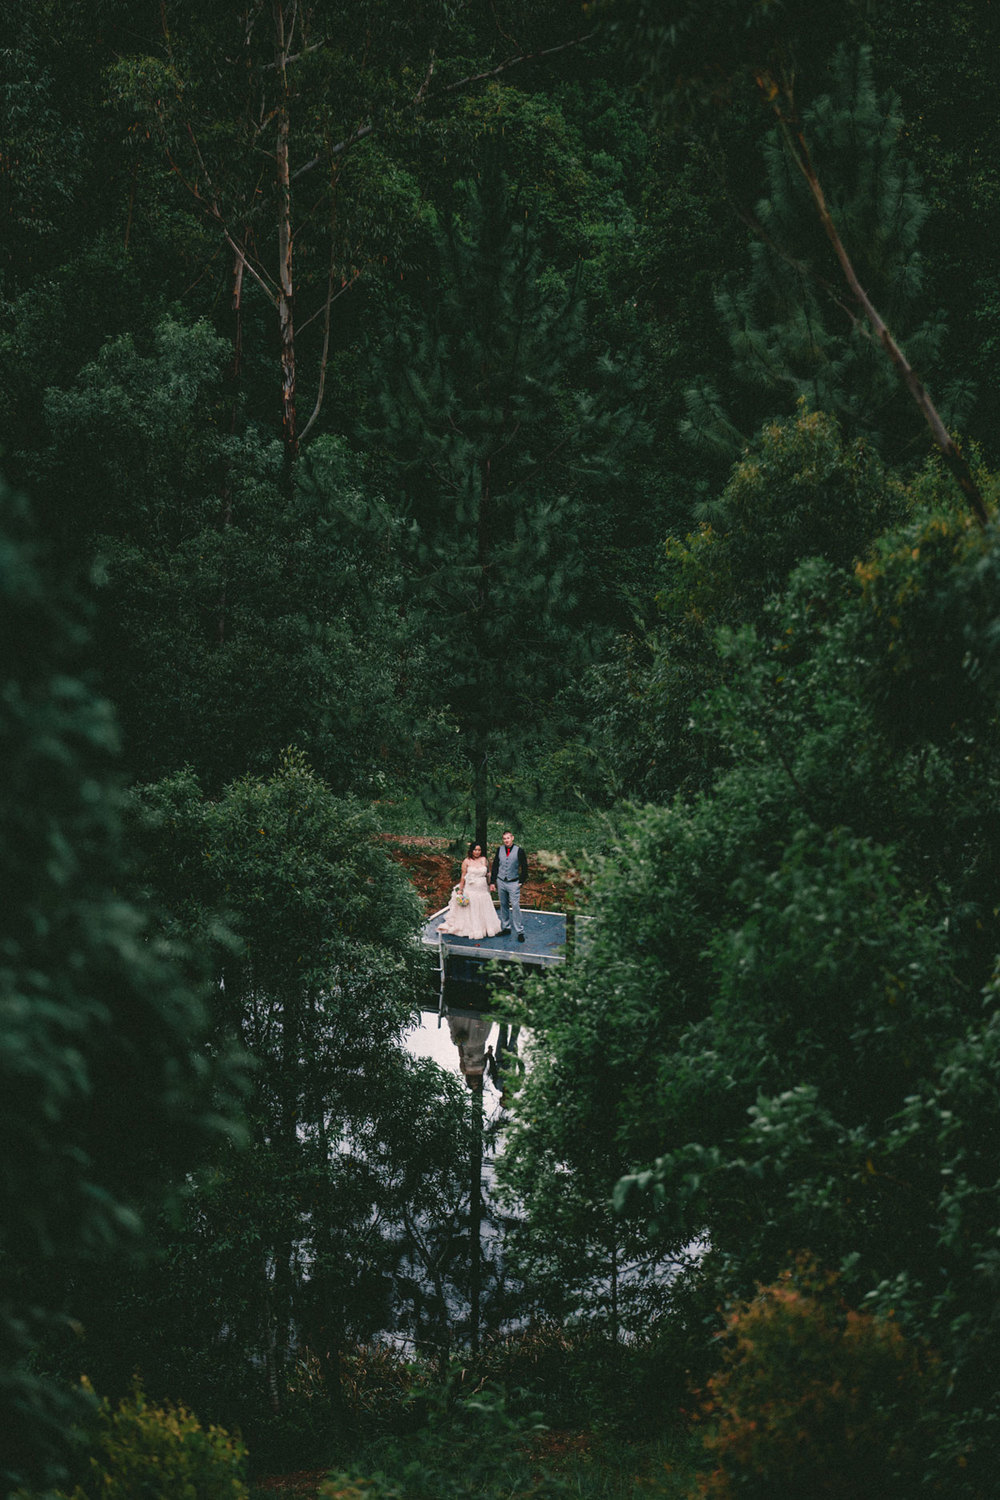 Sunshine-coast-wedding-photographers-noosa-maleny-flaxton-mapleton-montville-hinterland-coolum-mooloolaba-maroochydore-caloundra-beach-elopement-eco-friendly-best-photos-83.jpg